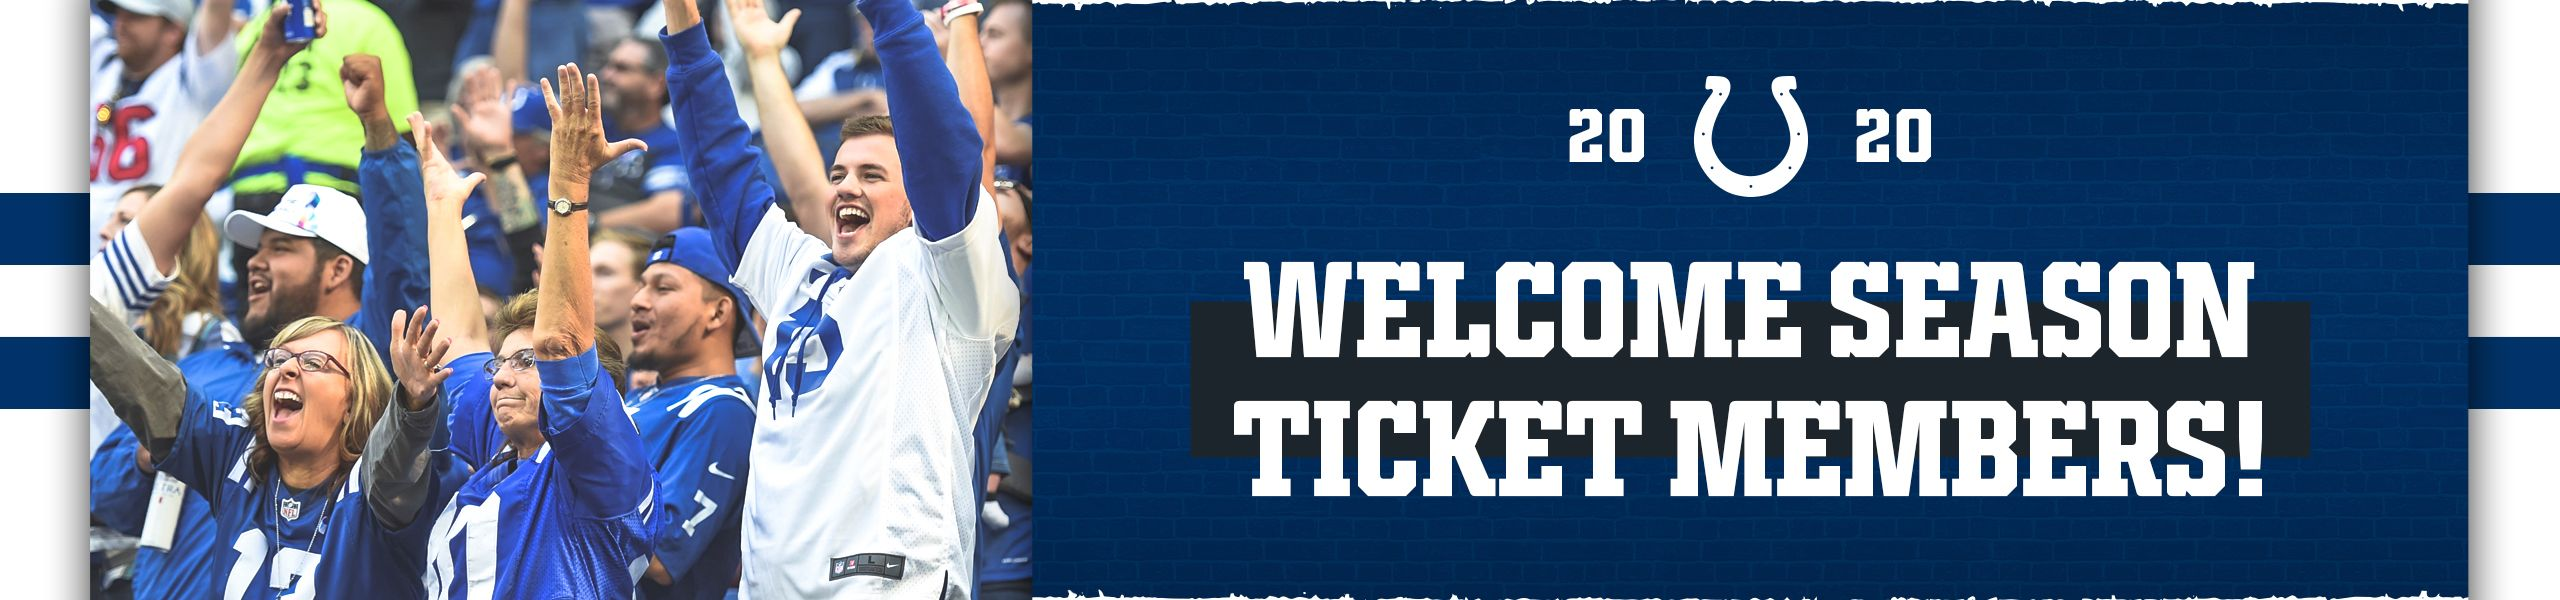 2020 Indianapolis Colts  Welcomes Season Ticket Members